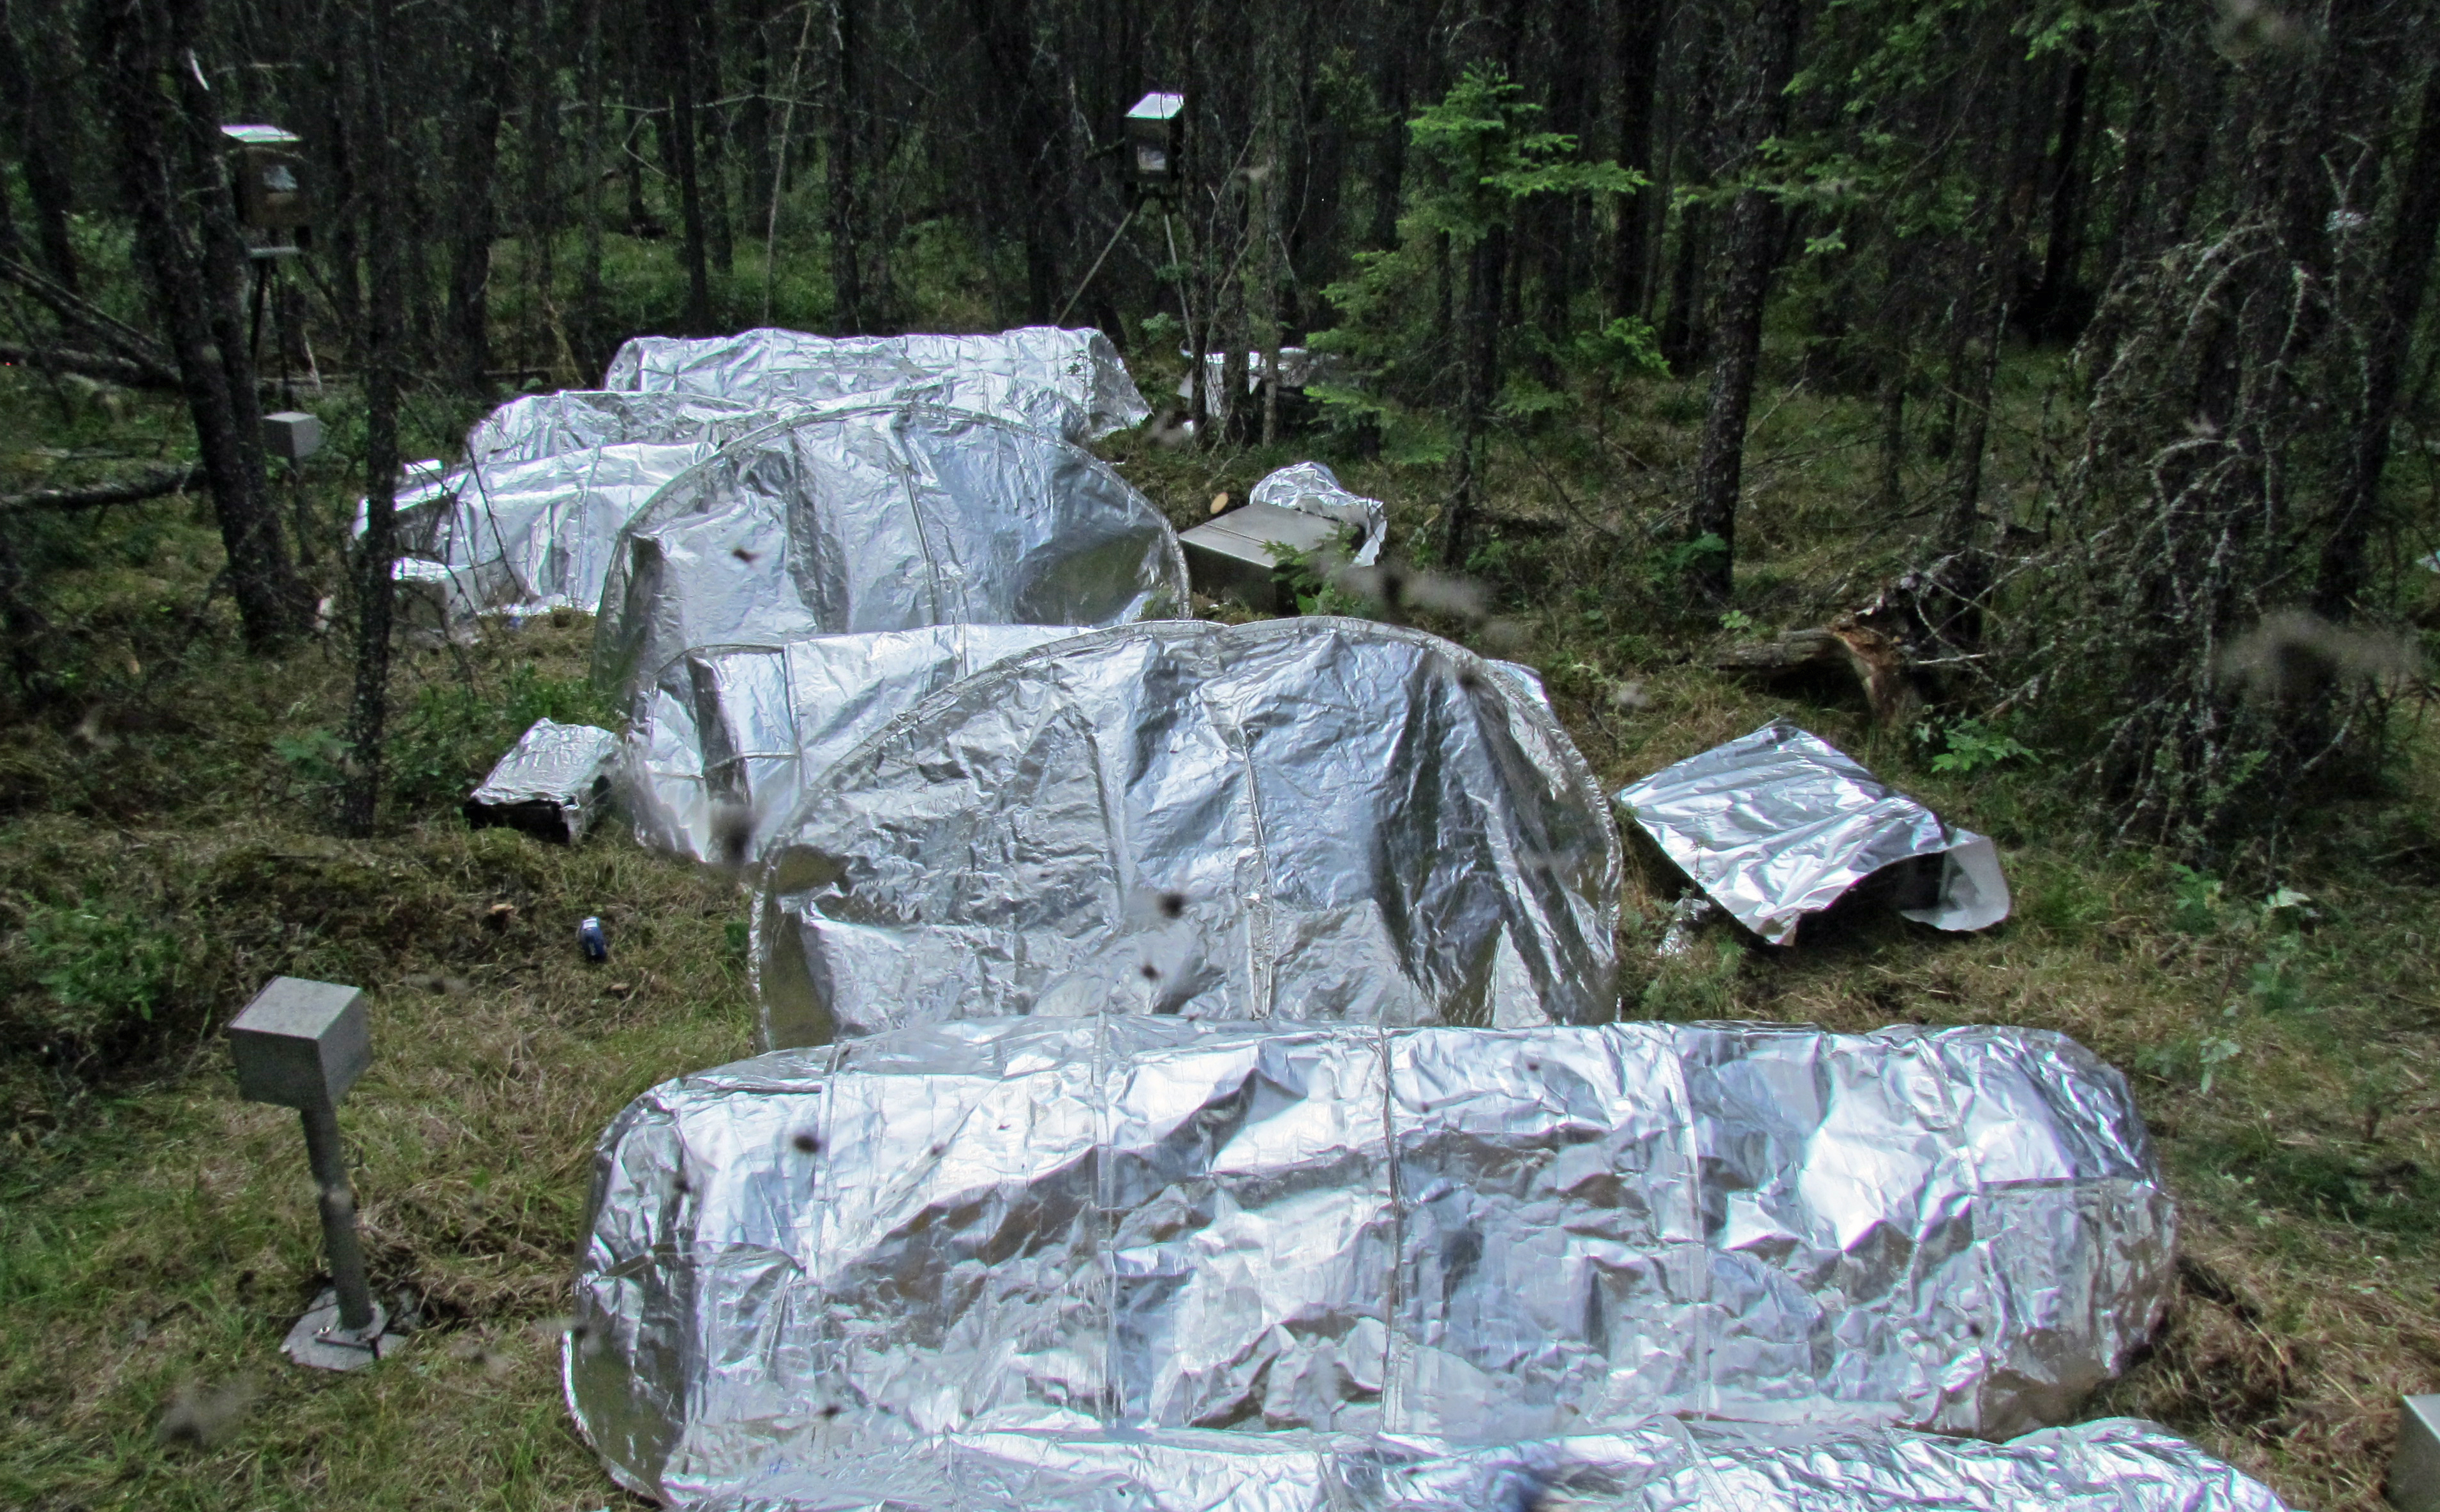 Model fire shelters are made from materials that reflect heat. & NASA Works with U.S. Forest Service to Improve Fire Shelters | NASA